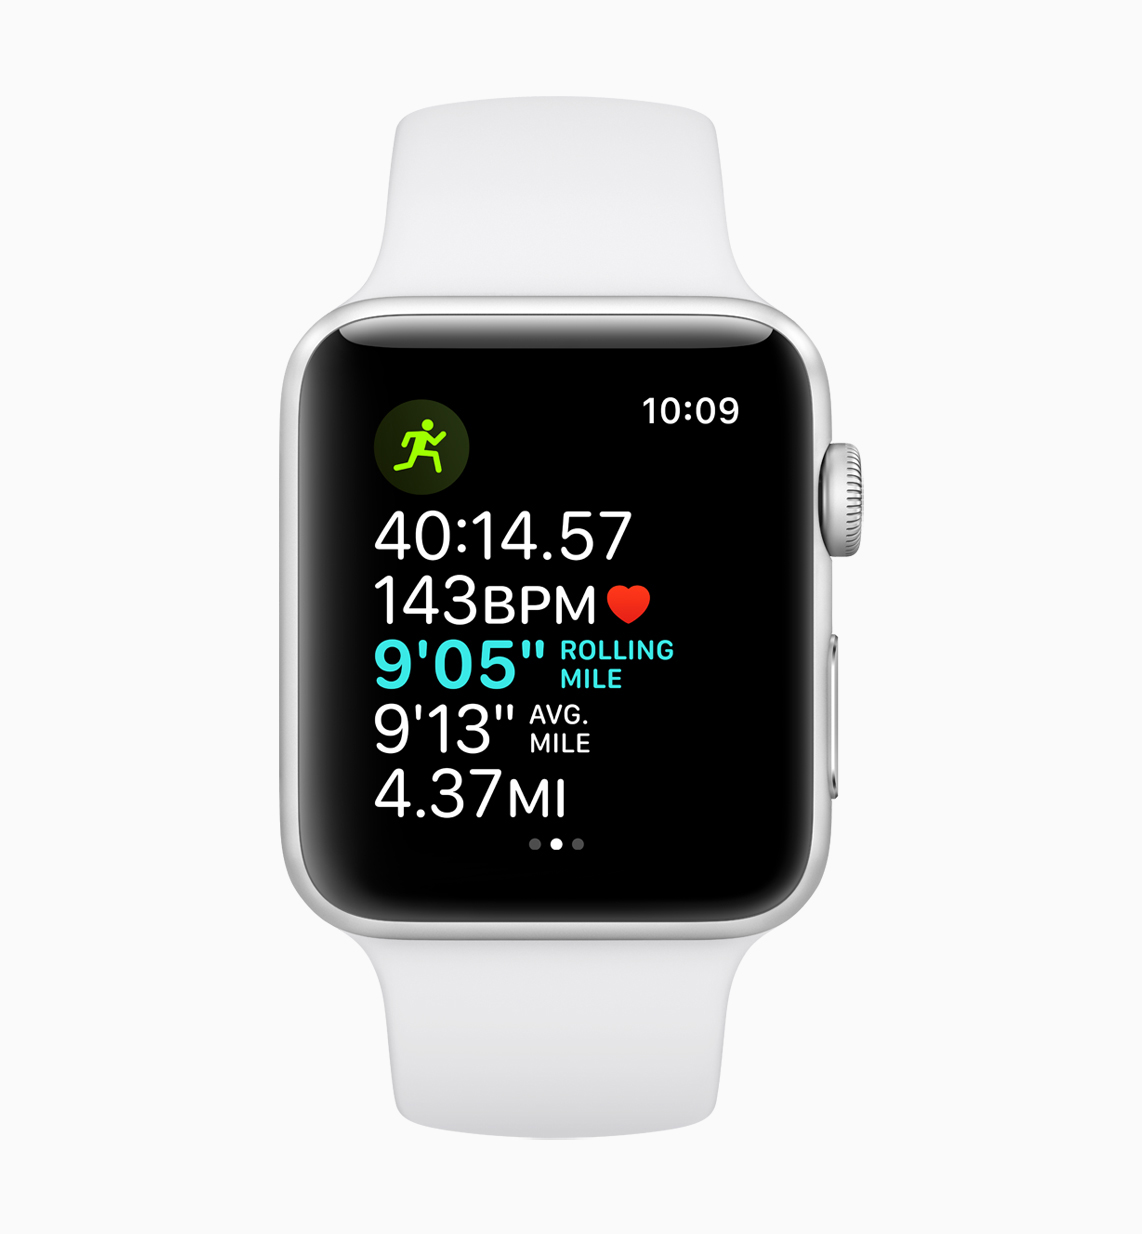 Apple-watchOS_5-Running-Features-screen-06042018